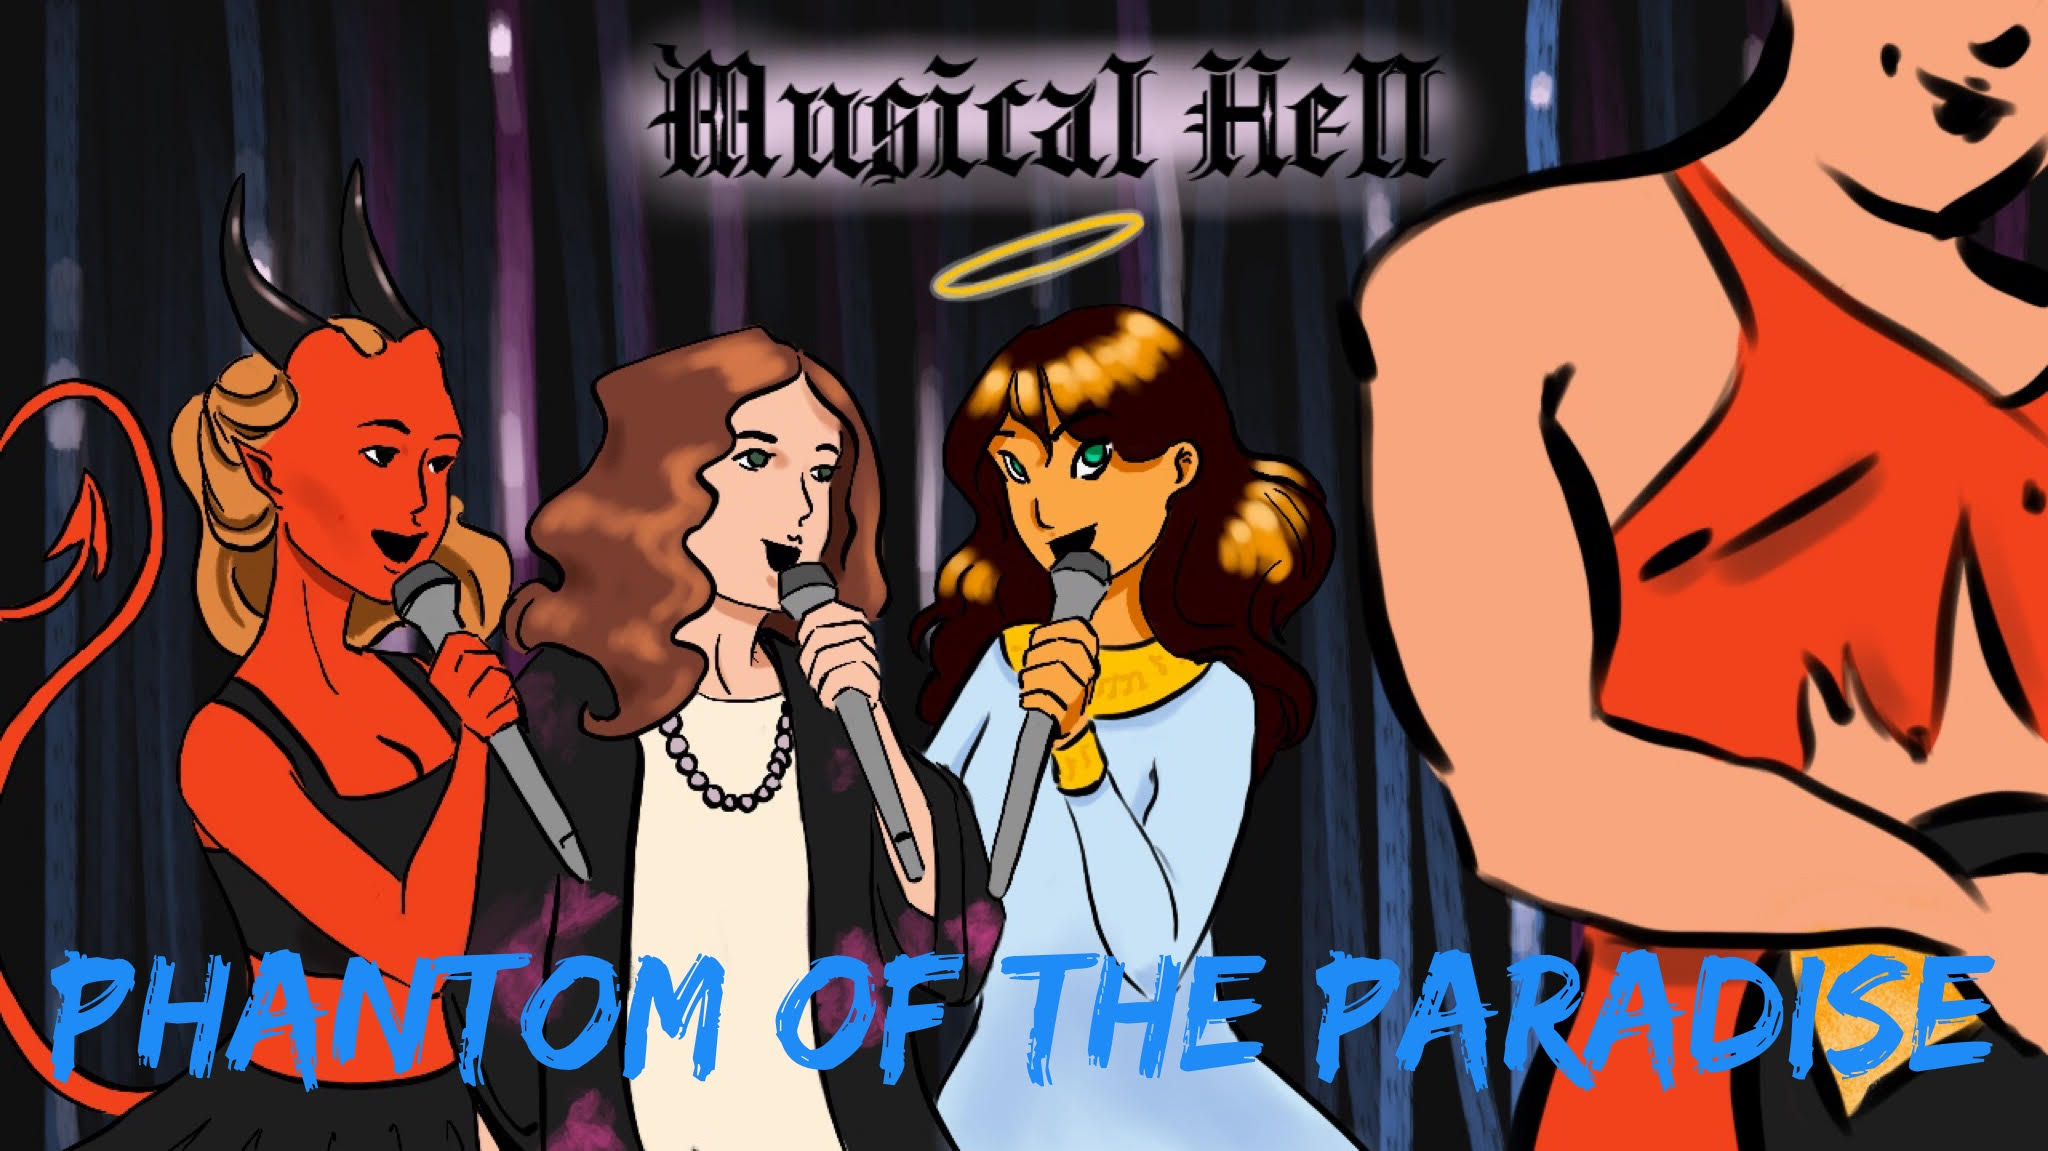 Musical Hell: Phantom of the Paradise